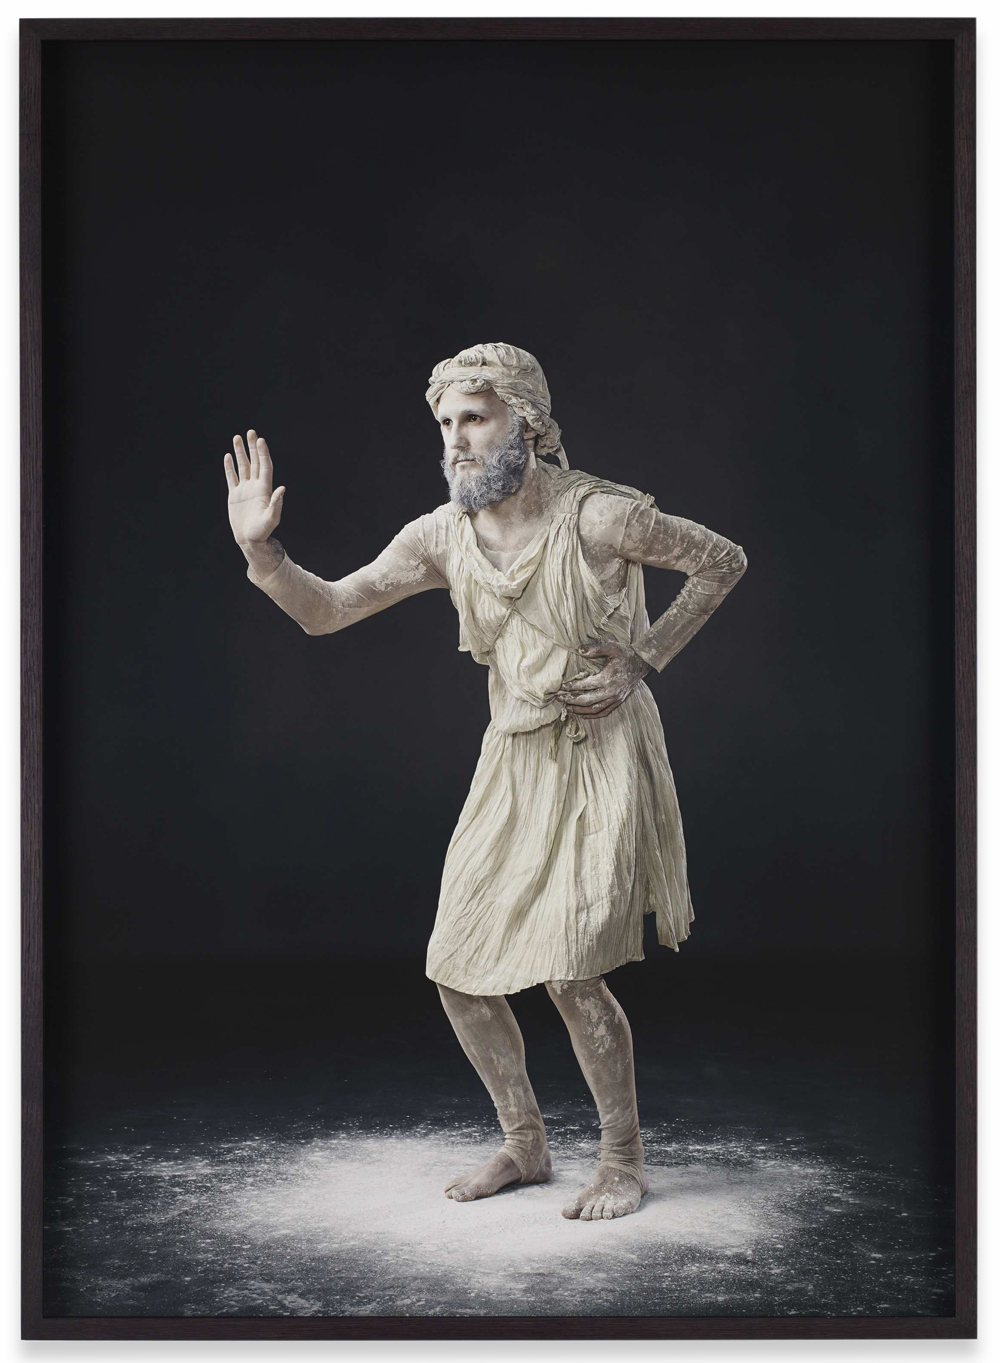 Alexandre Singh,  Number Twenty-Three , 2014, Photographer: Kate Lacey, Giclee print, 111 x 79.3 cm, 113.5 x 82 cm (framed), Courtesy of Sprüth Magers / Art:Concept, Paris / Metro Pictures, New York / Monitor, Rome